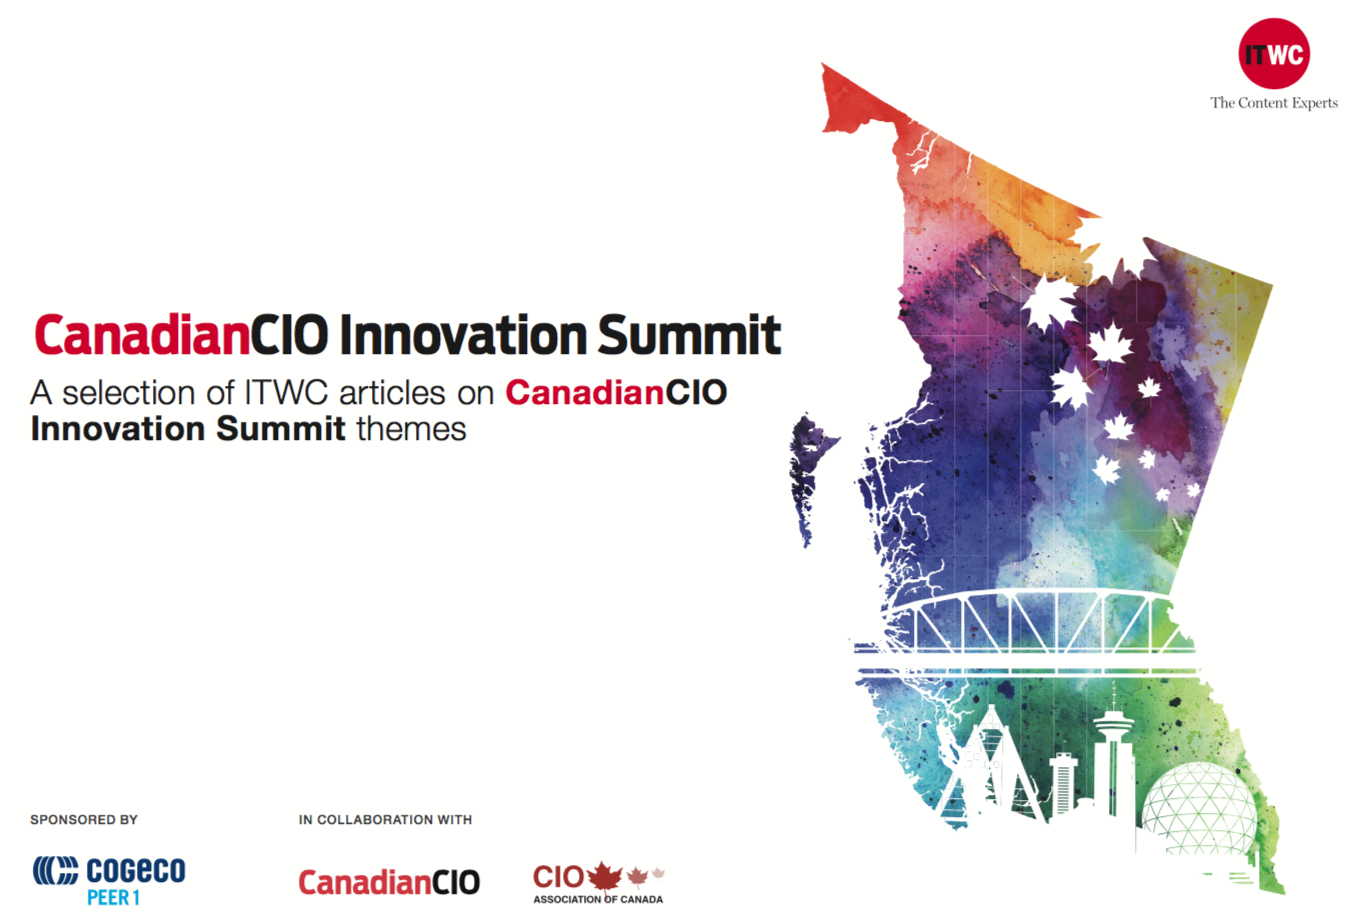 CanadianCIO Innovation Summit